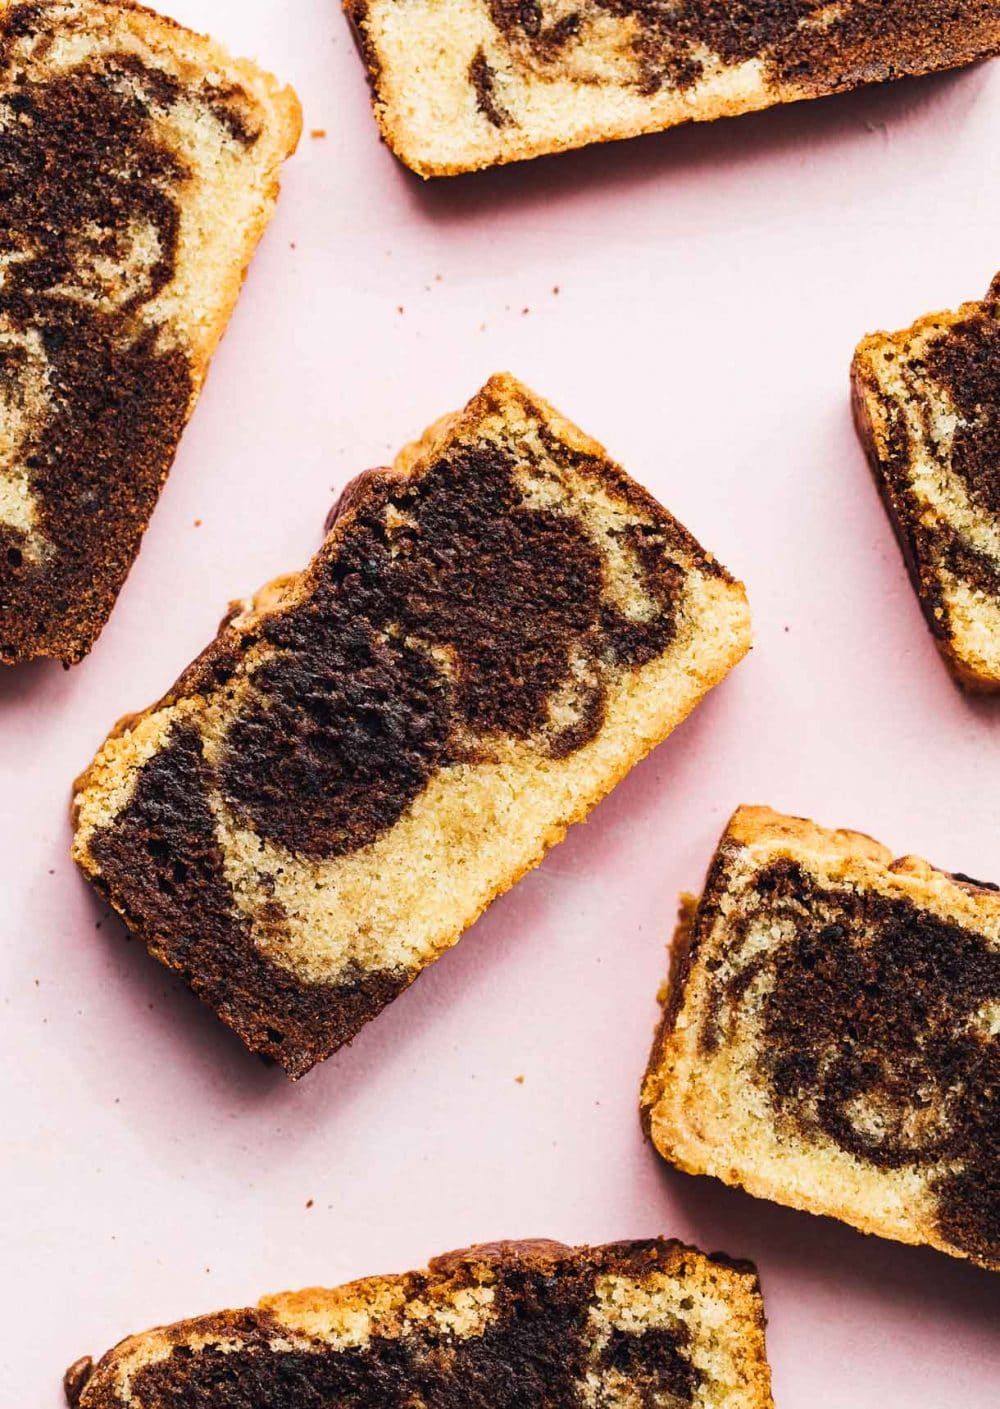 slices of marble pound cake on a pink backround